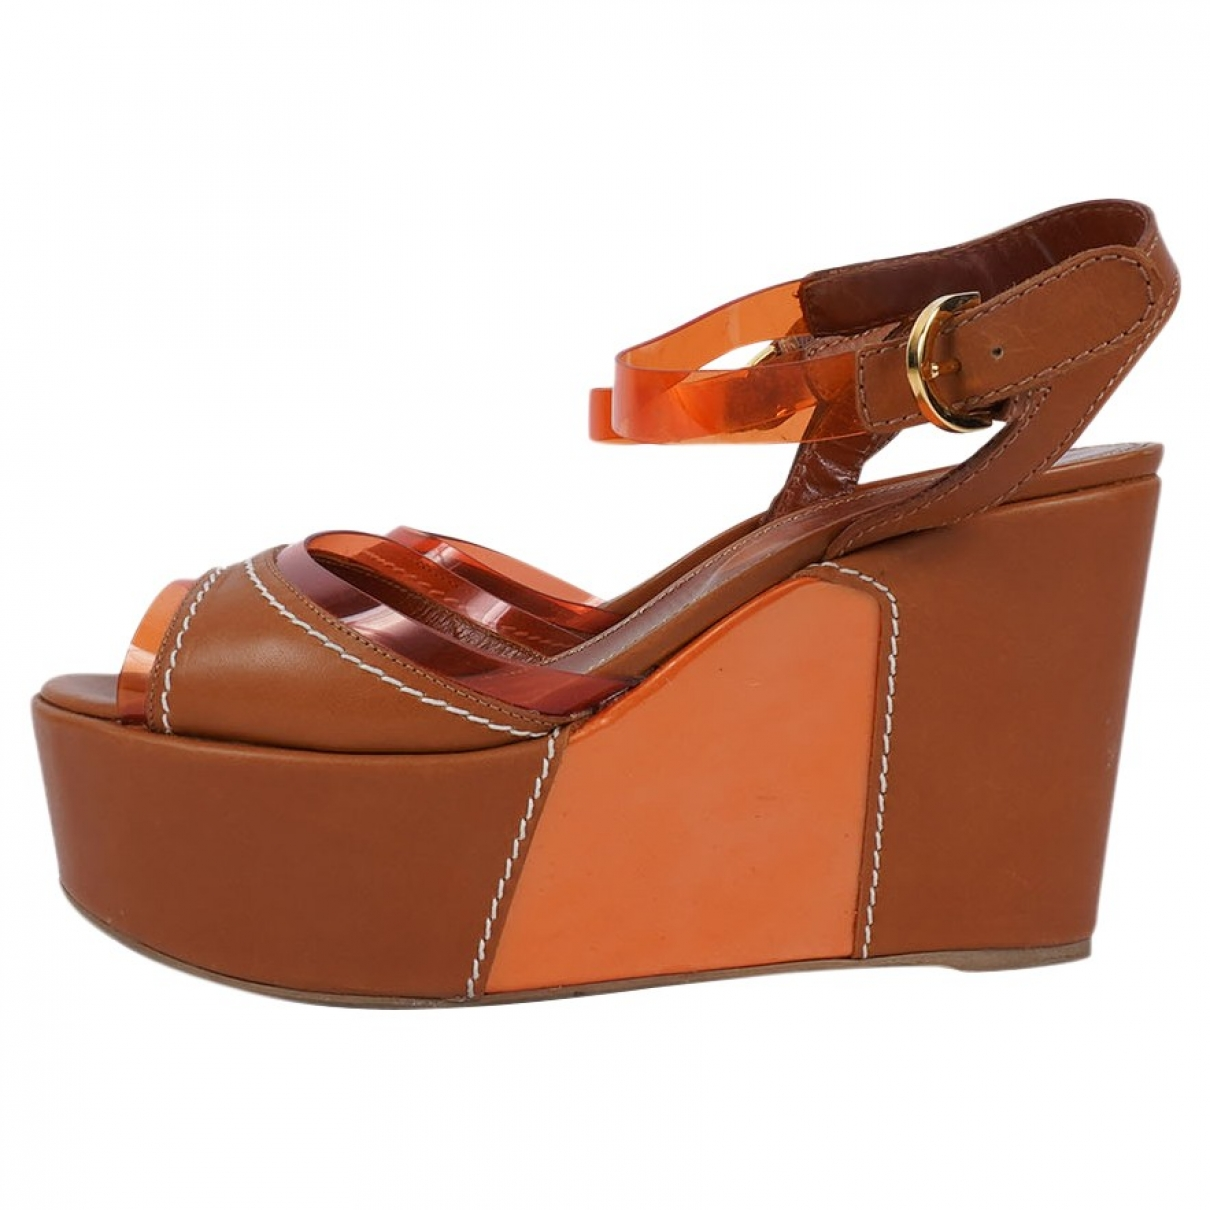 Sergio Rossi \N Brown Leather Sandals for Women 38 EU